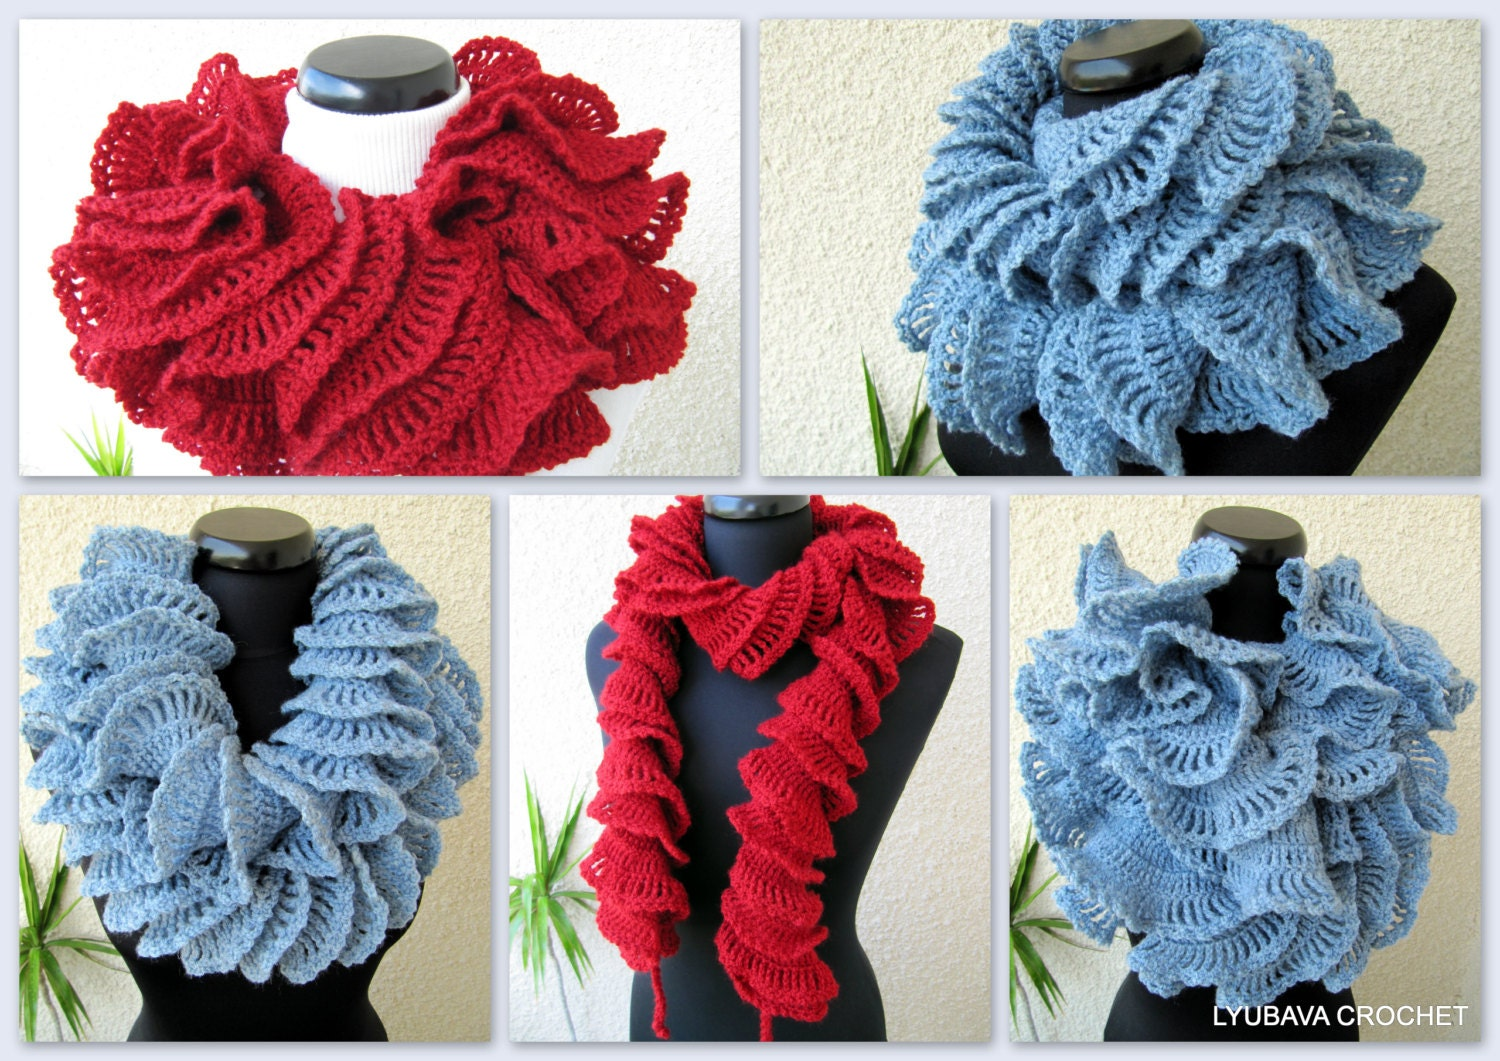 Crochet Patterns Ruffle Scarf : Crochet Scarf PATTERN Ruffle Scarf Crochet by LyubavaCrochet